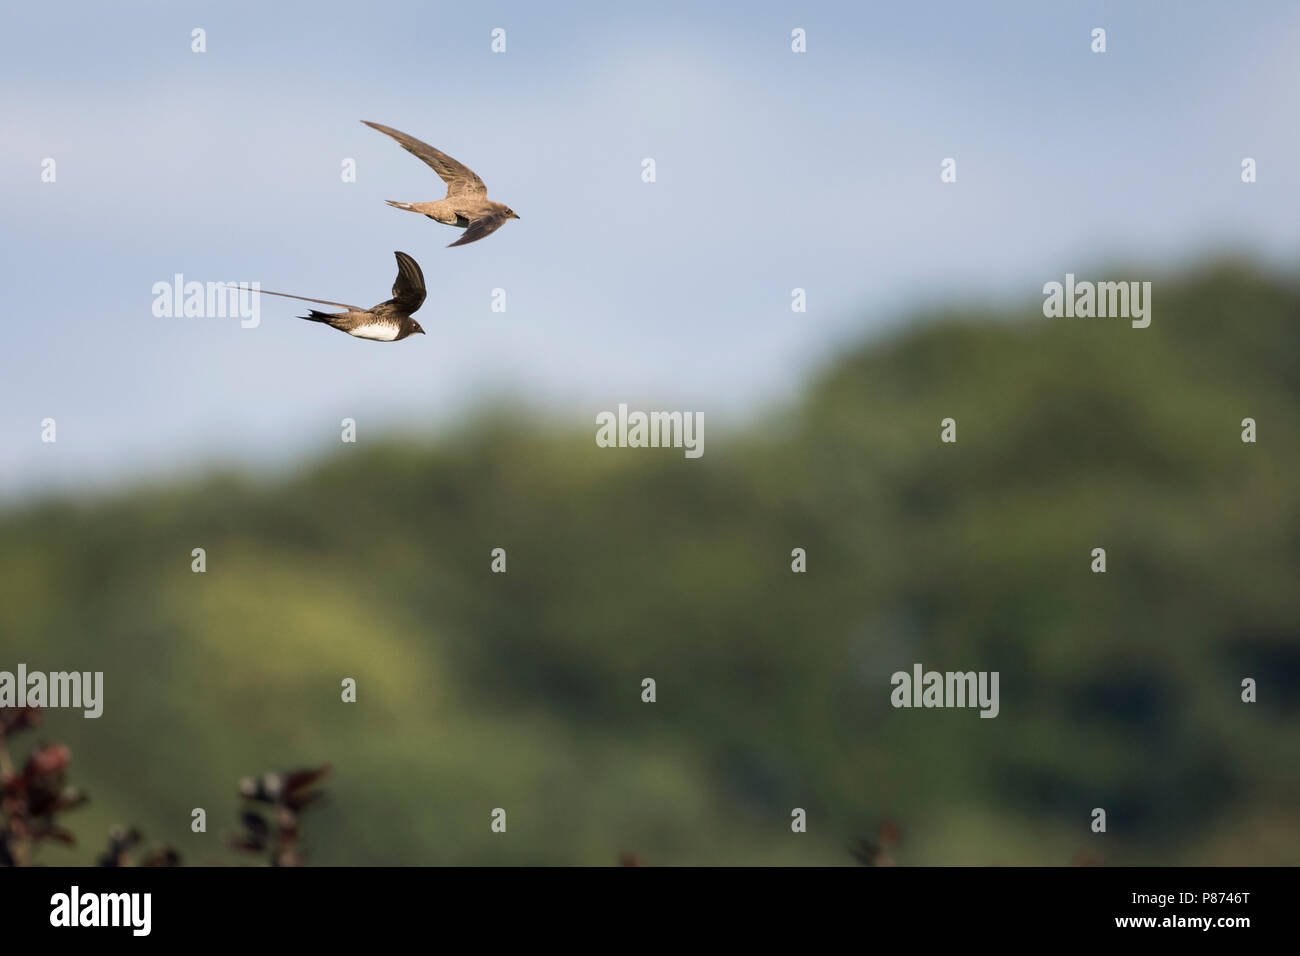 Alpine Swift - Alpensegler - Tachymarptis melba ssp. melba, Germany, adult Stock Photo